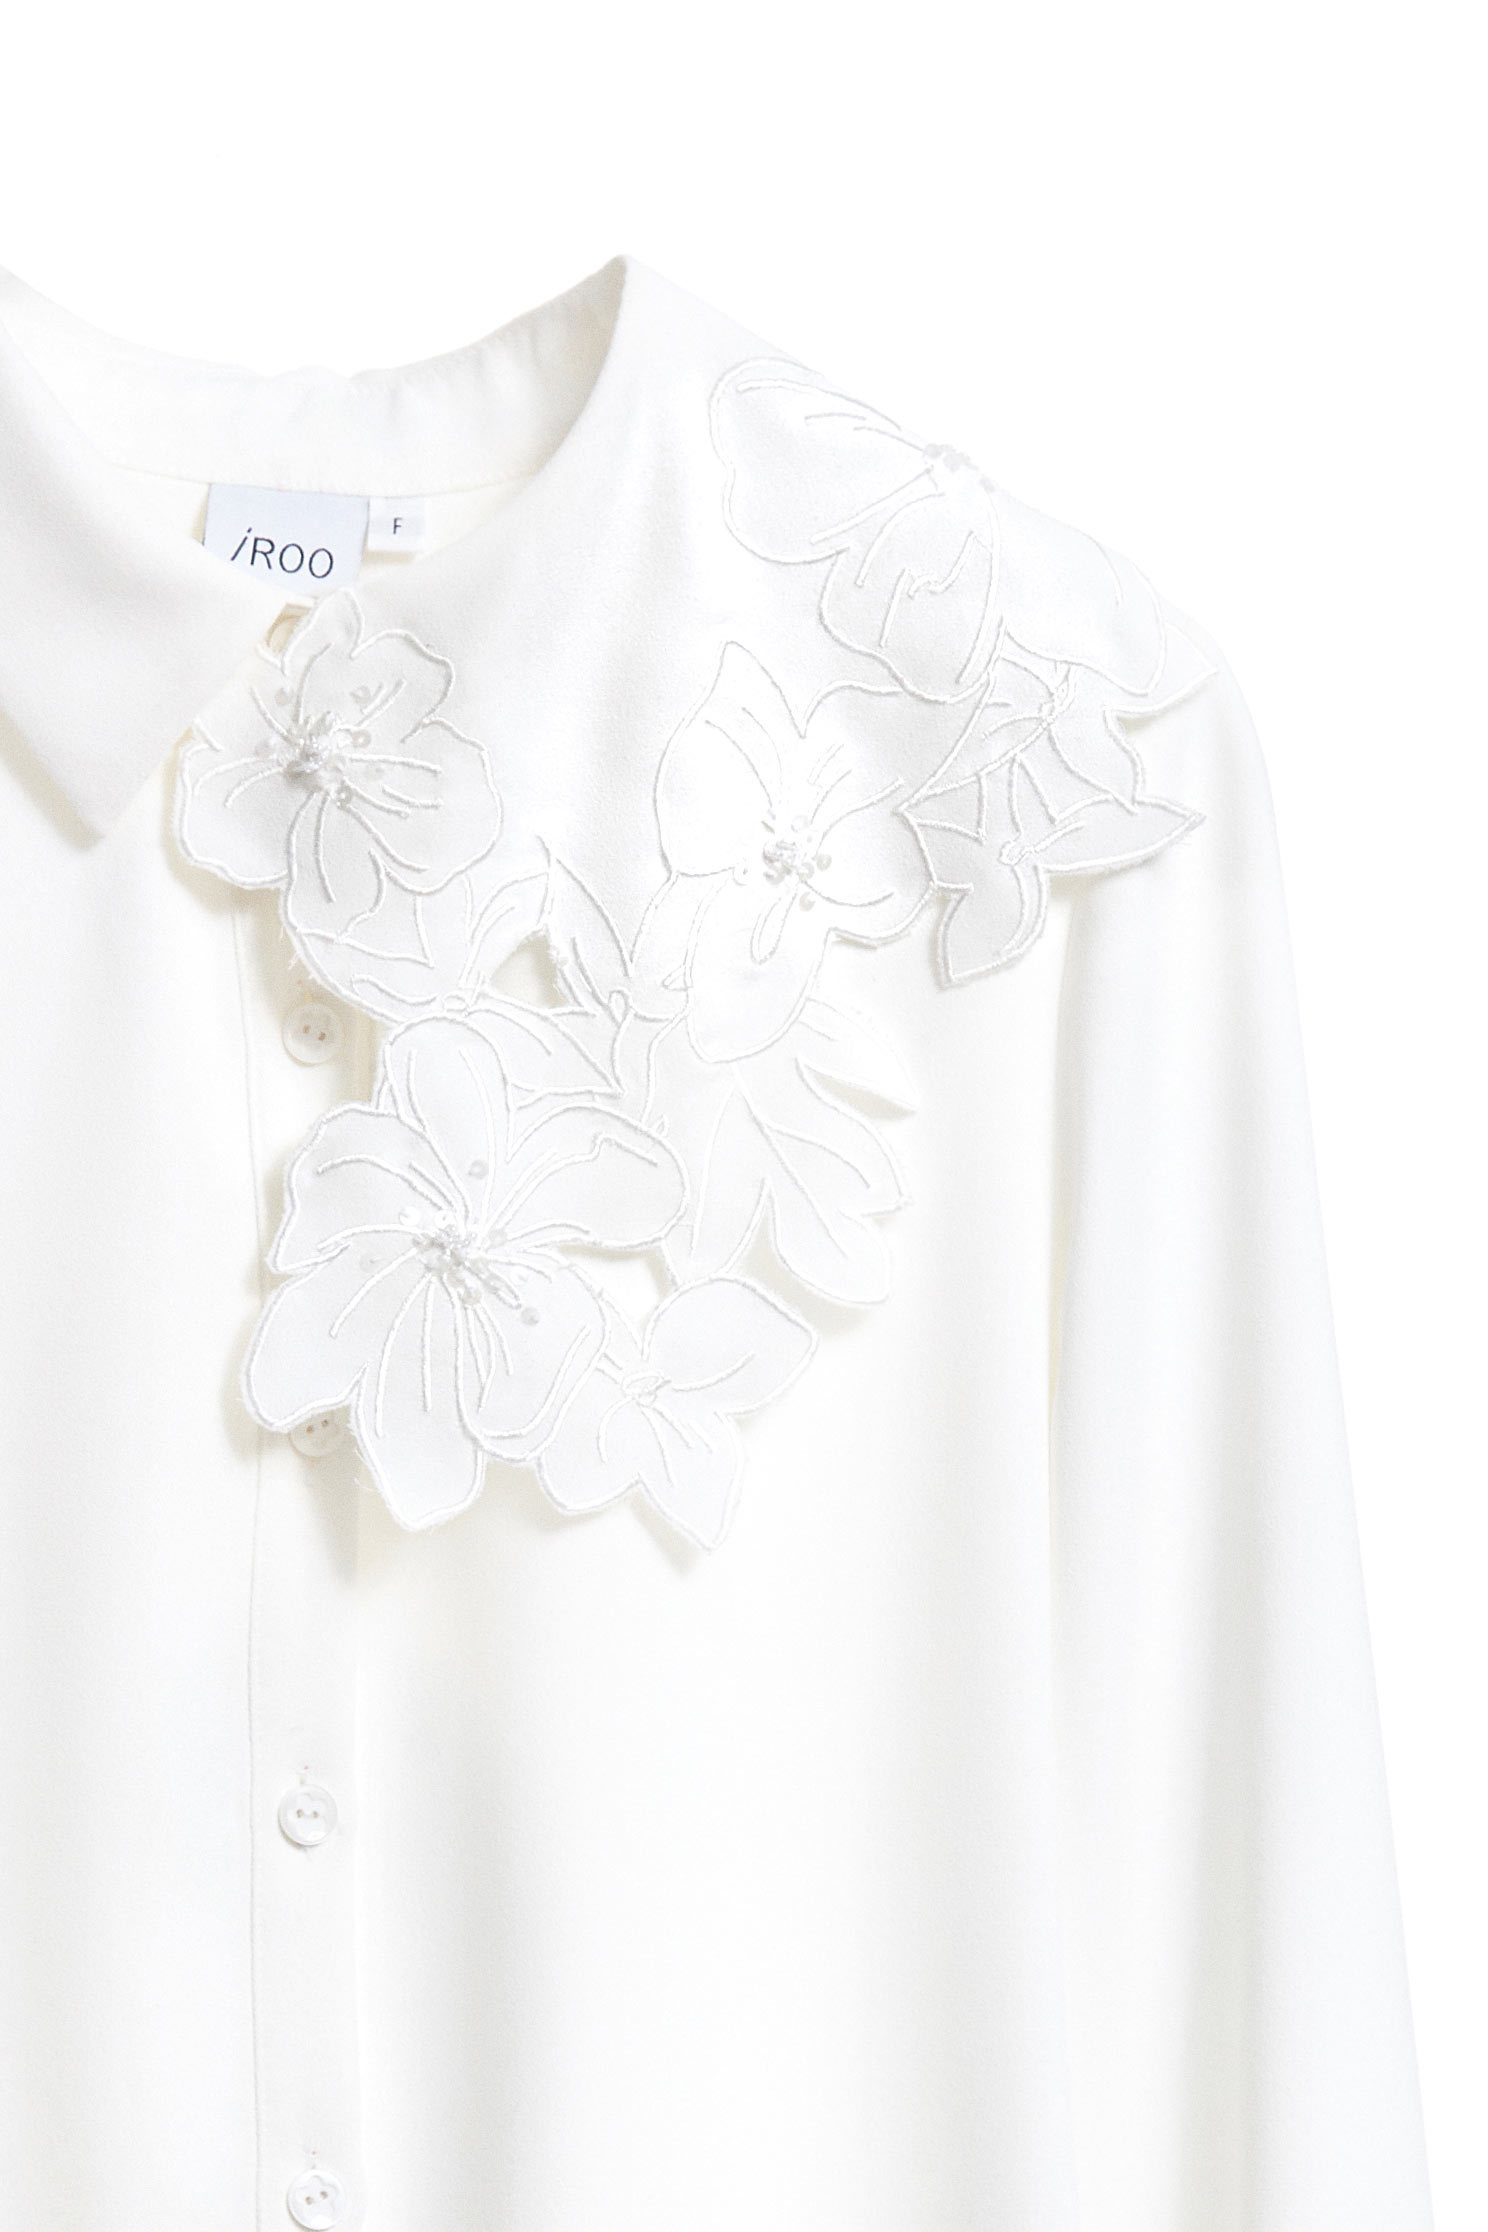 floral embroidered collared fashion blouse,top,whitetop,blouse,longsleevetop